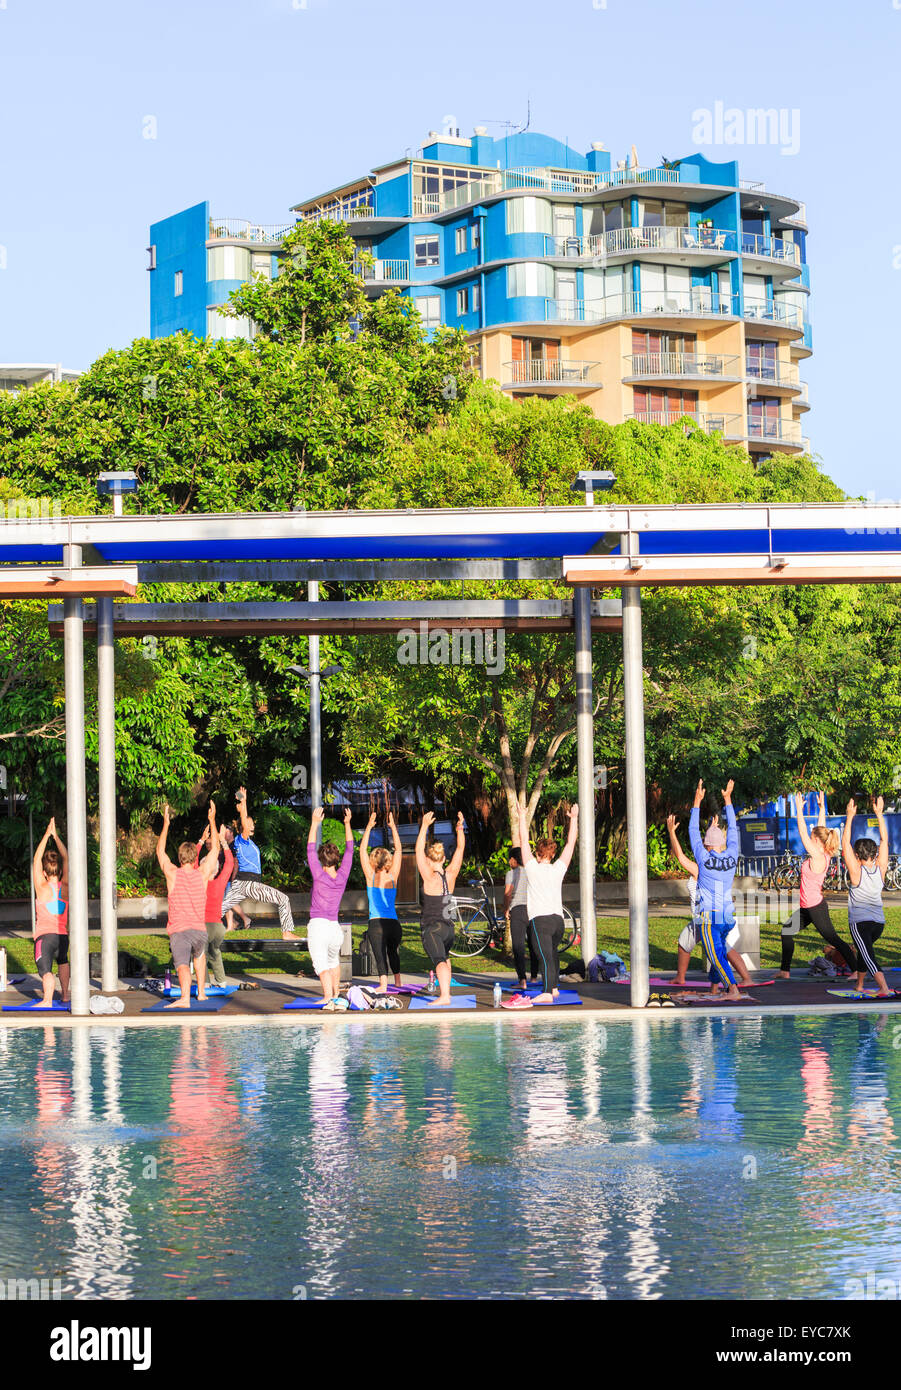 A mixed group of men and women in a yoga class beside an outdoor swimming pool in Cairns, Australia - Stock Image